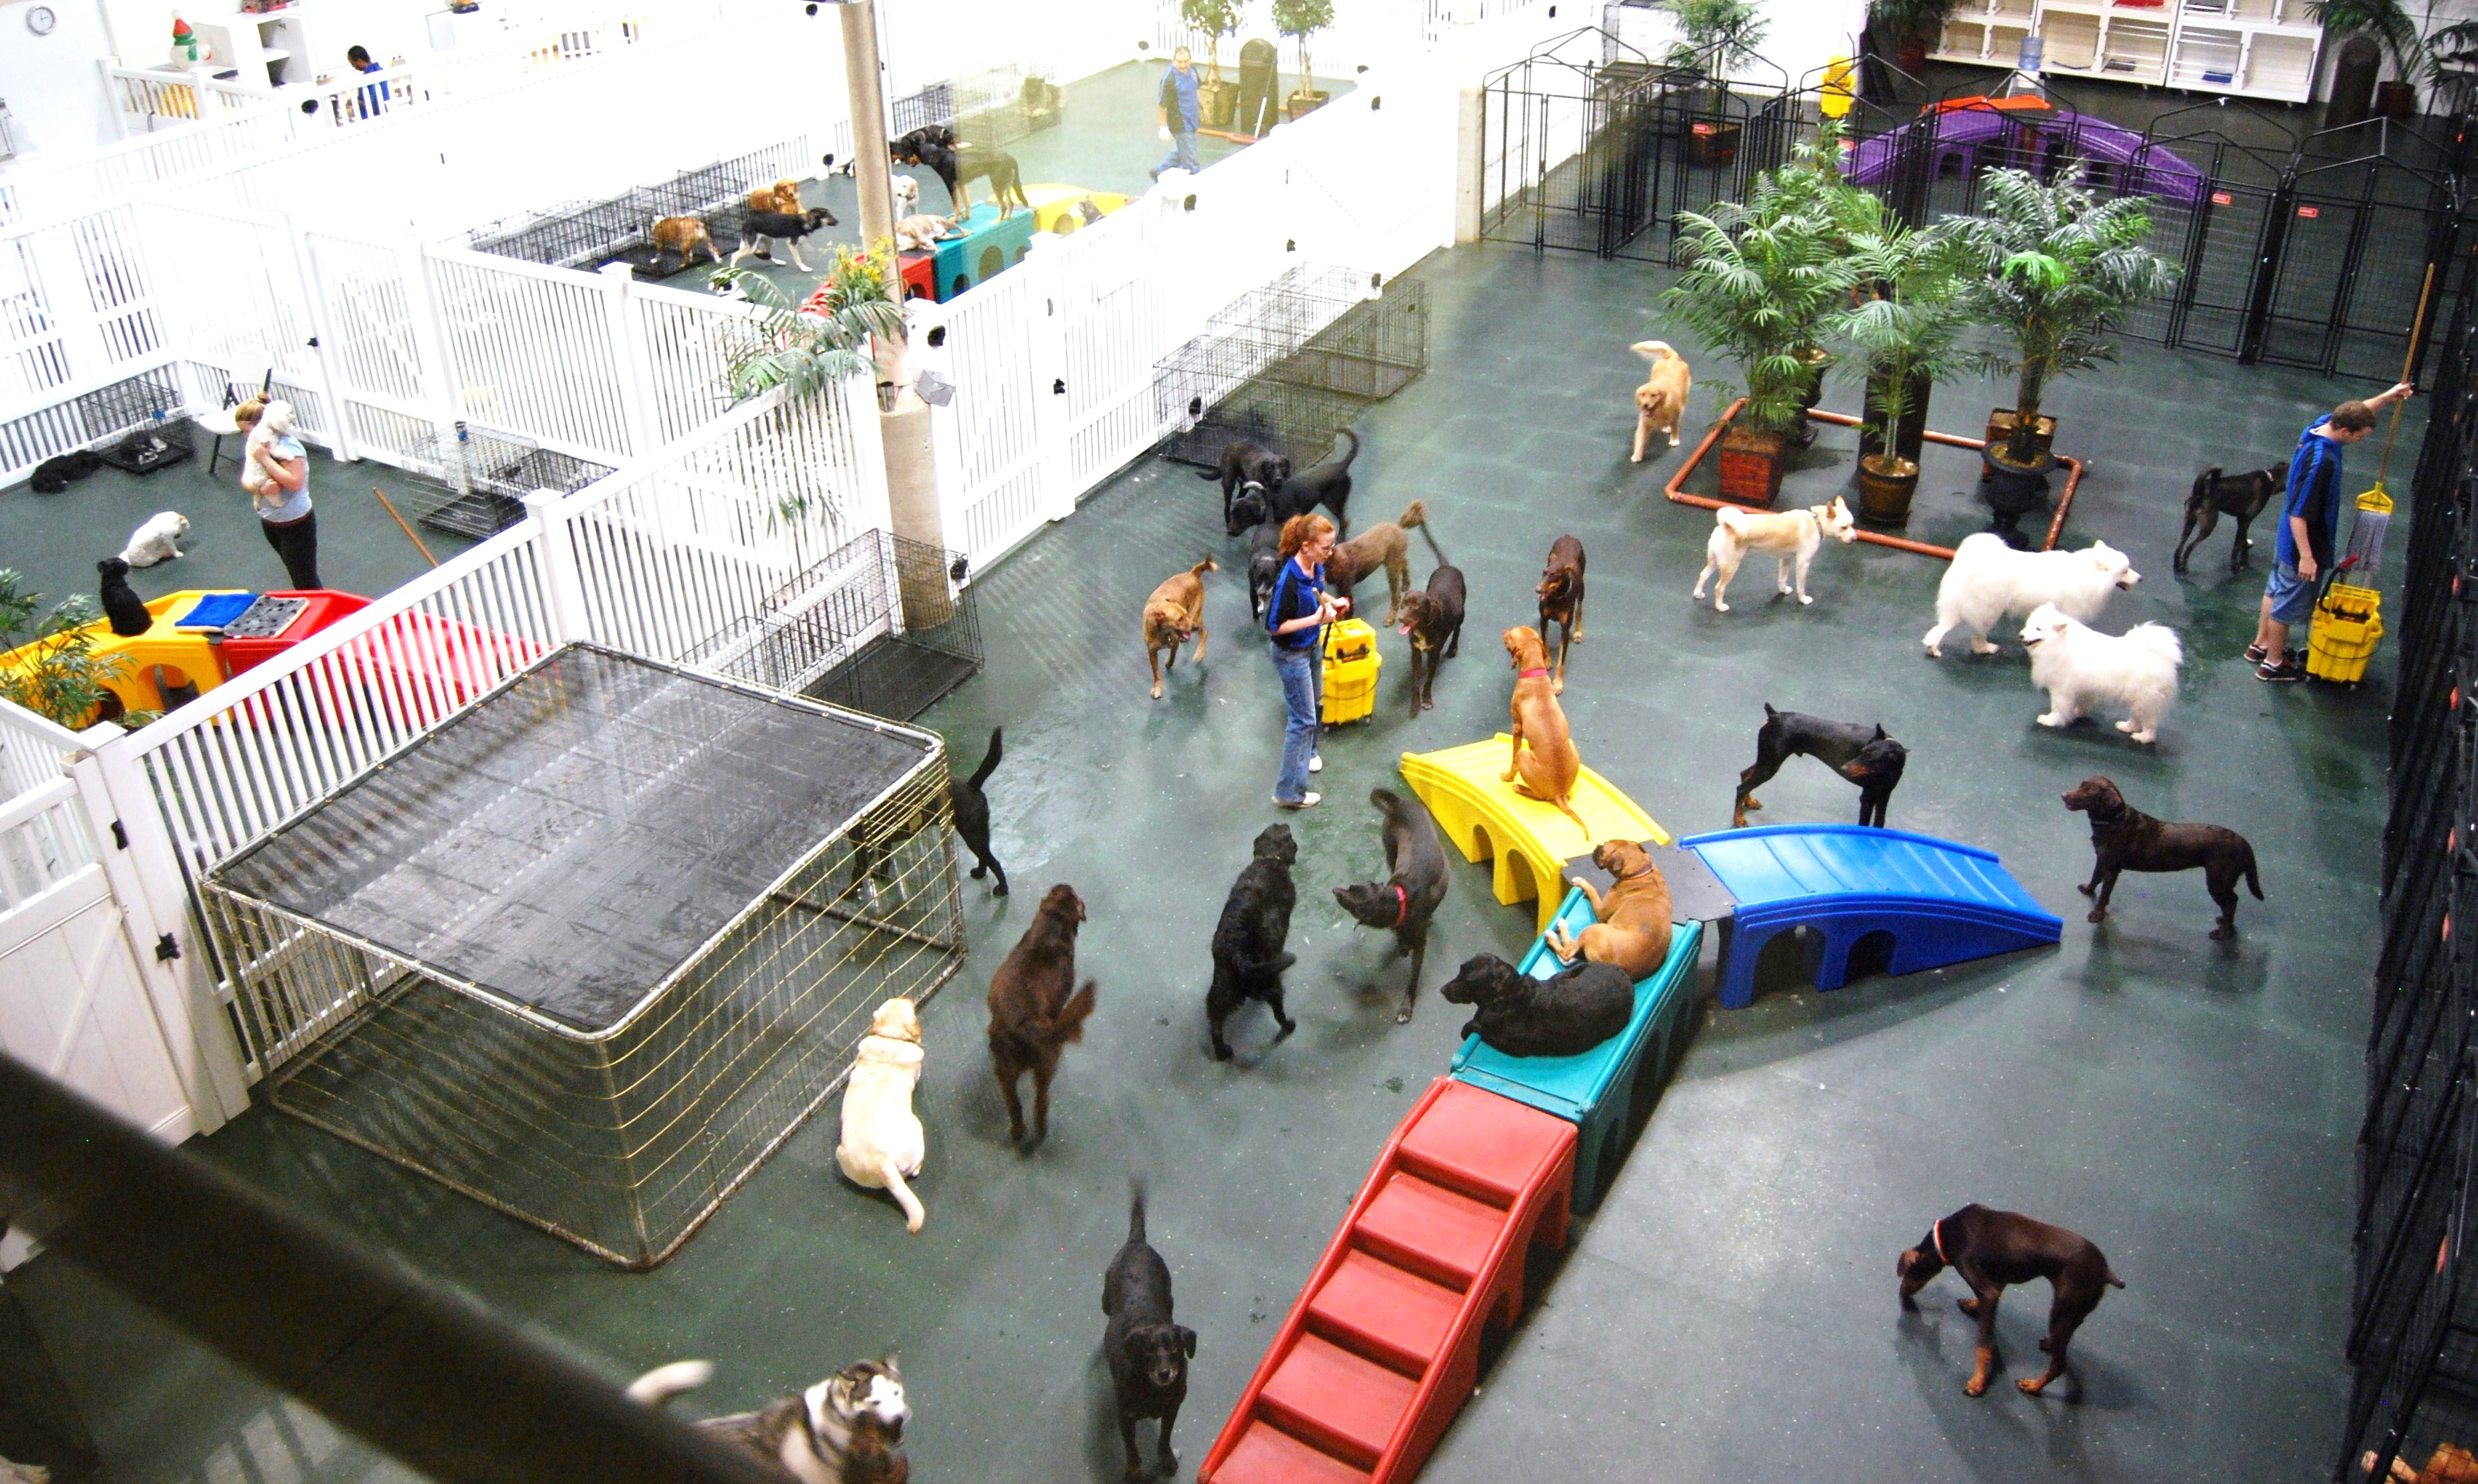 How To Find A Good Dog Daycare